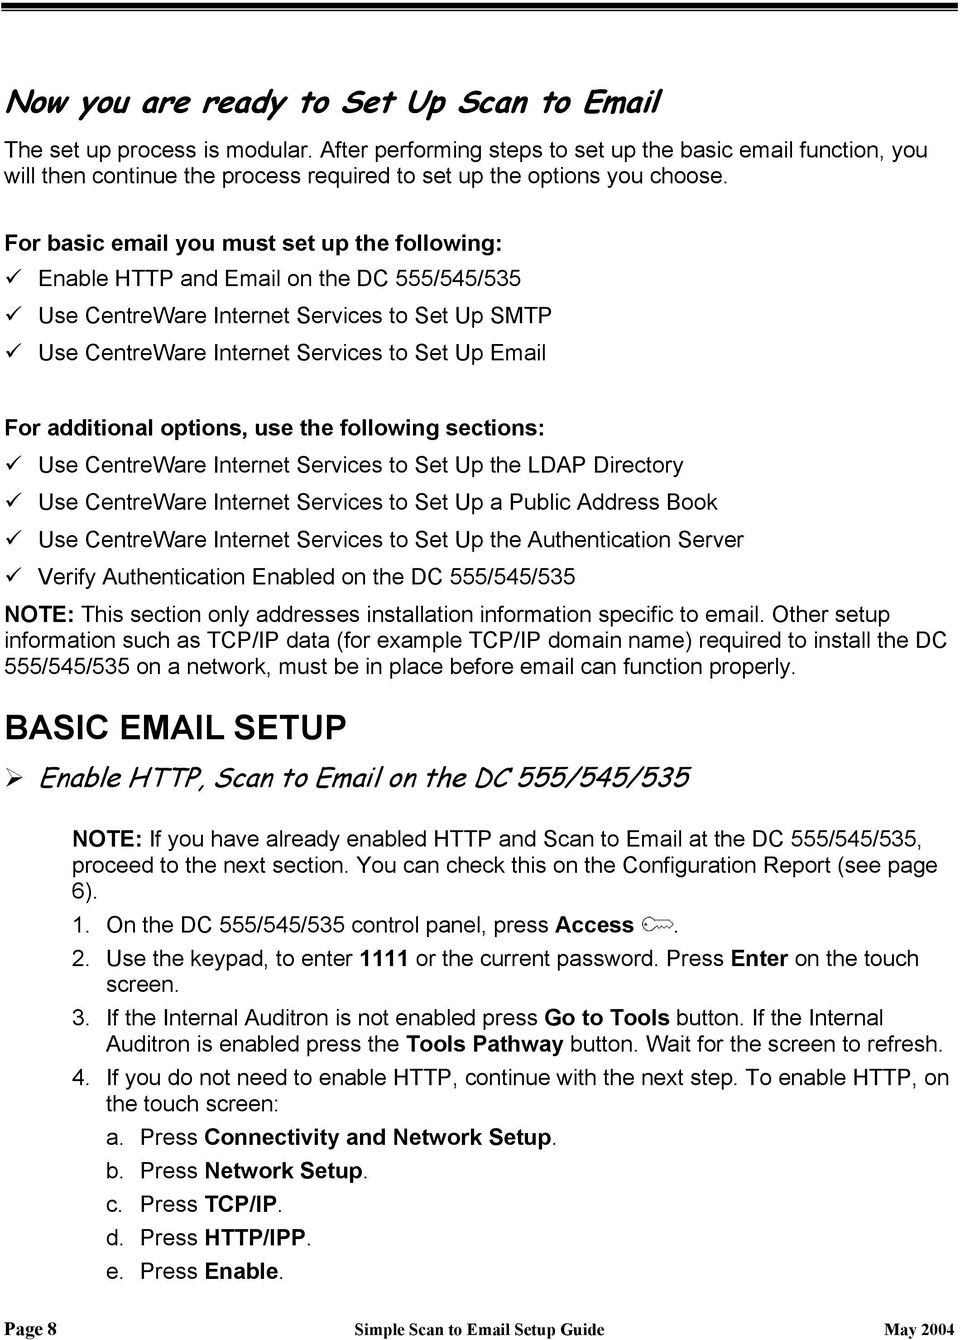 For basic email you must set up the following: Enable HTTP and Email on the DC 555/545/535 Use CentreWare Internet Services to Set Up SMTP Use CentreWare Internet Services to Set Up Email For